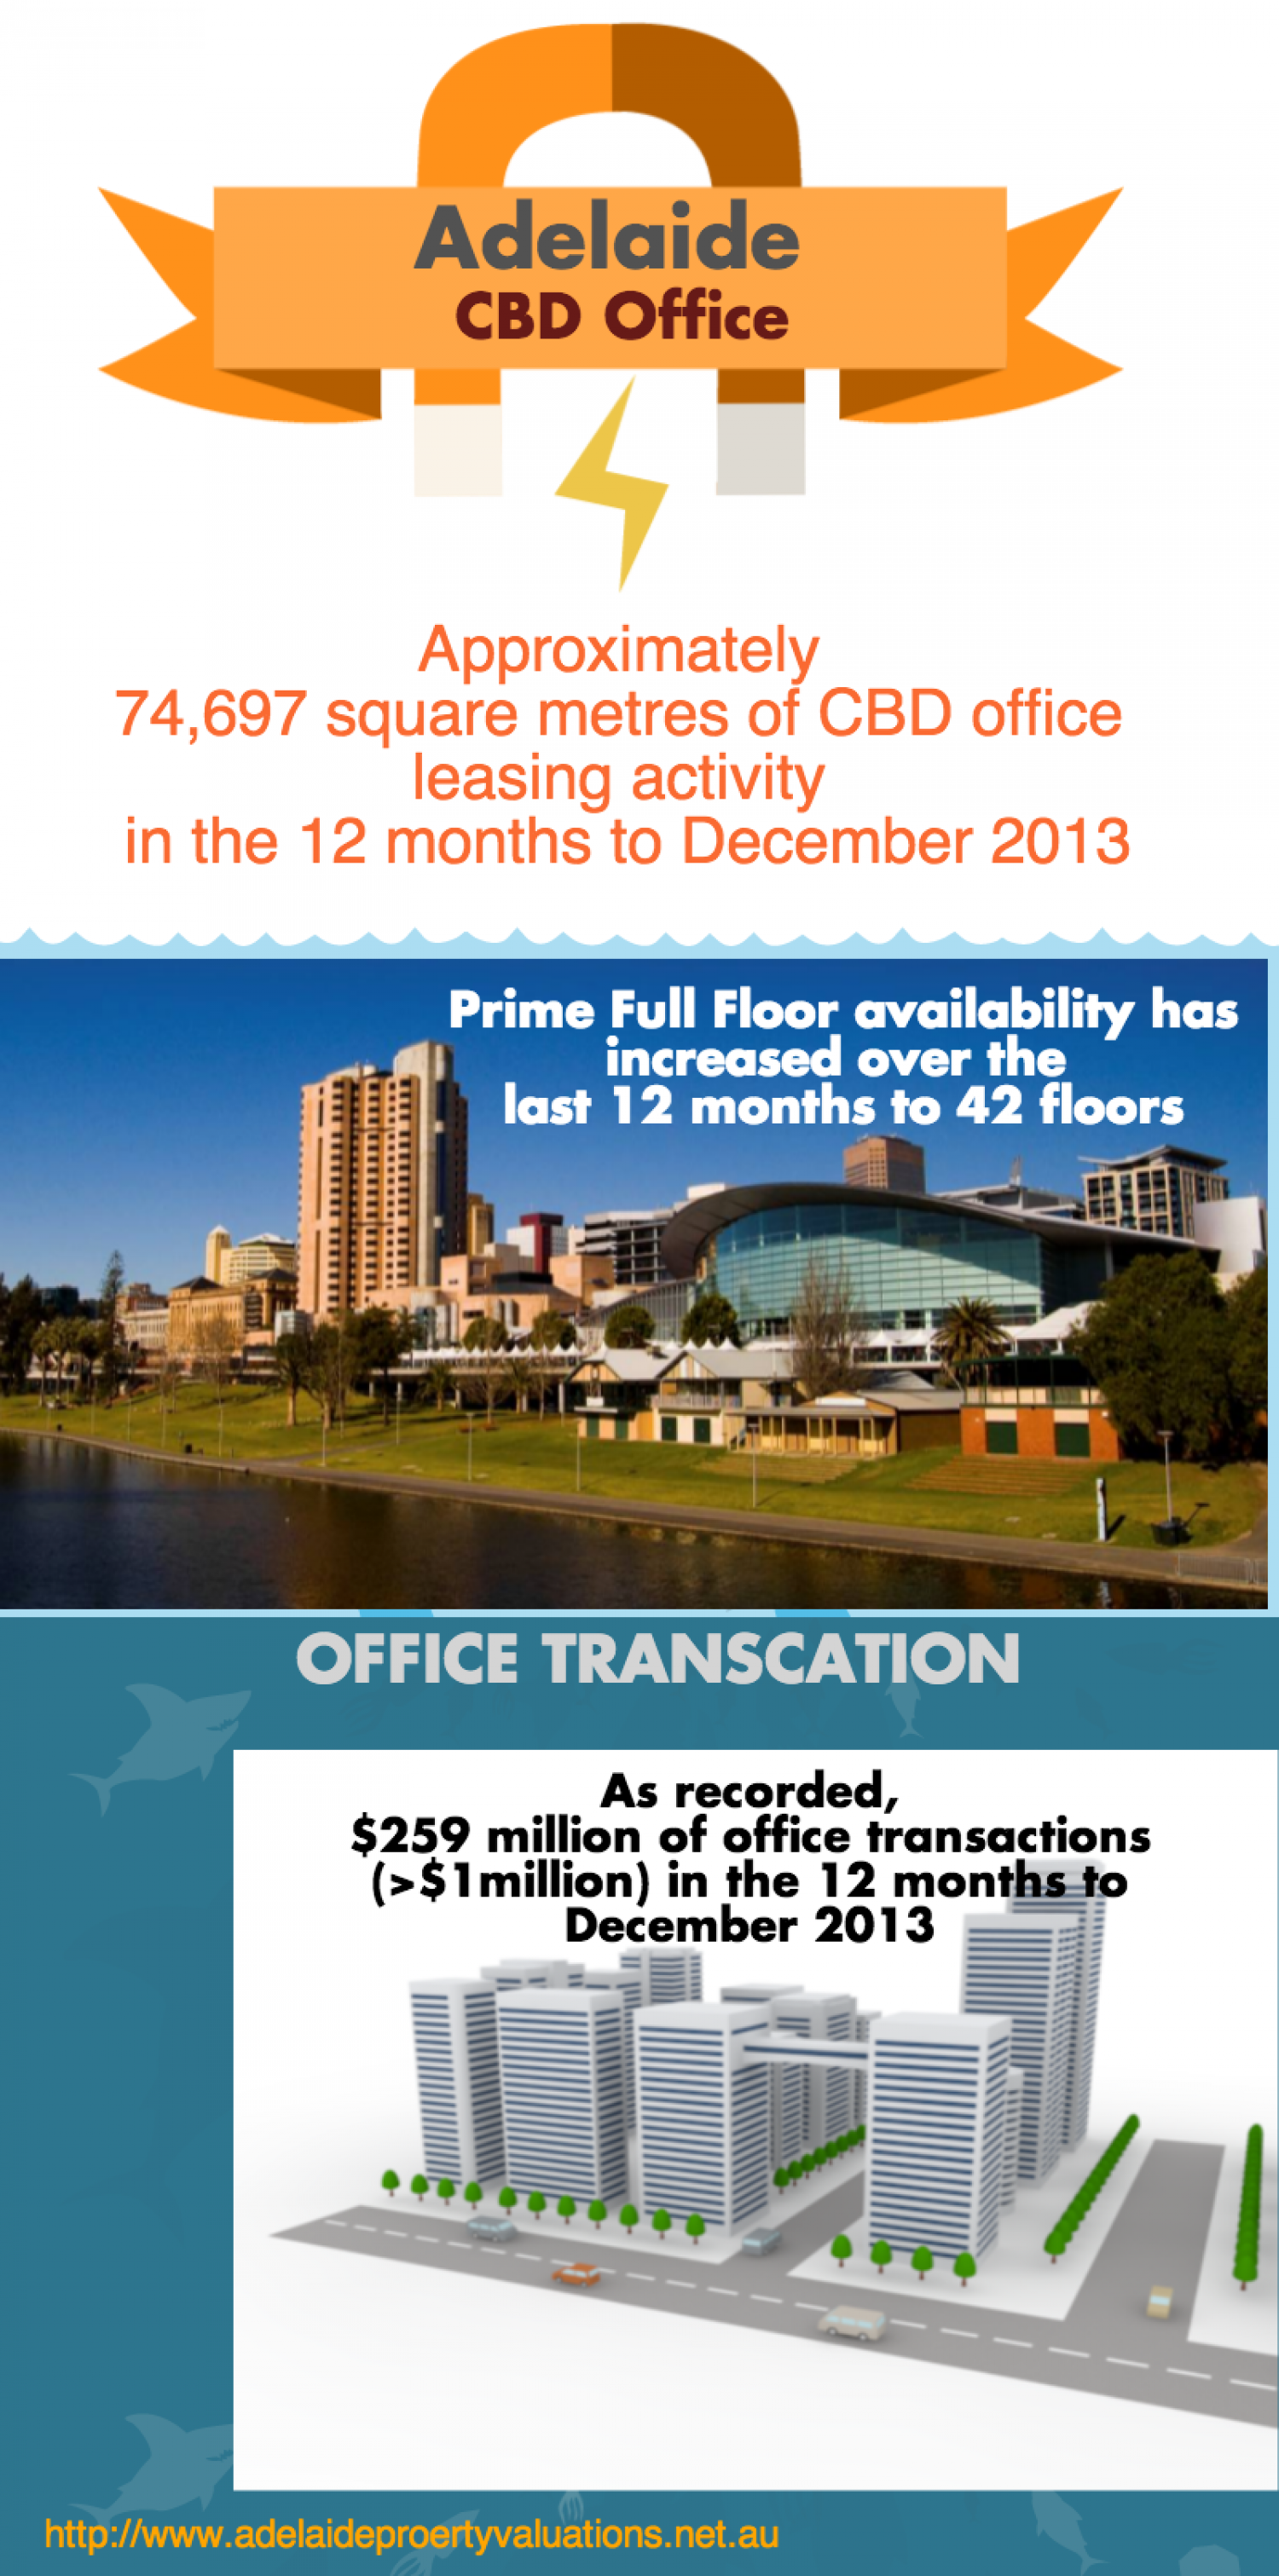 Adelaide CBD Office Infographic